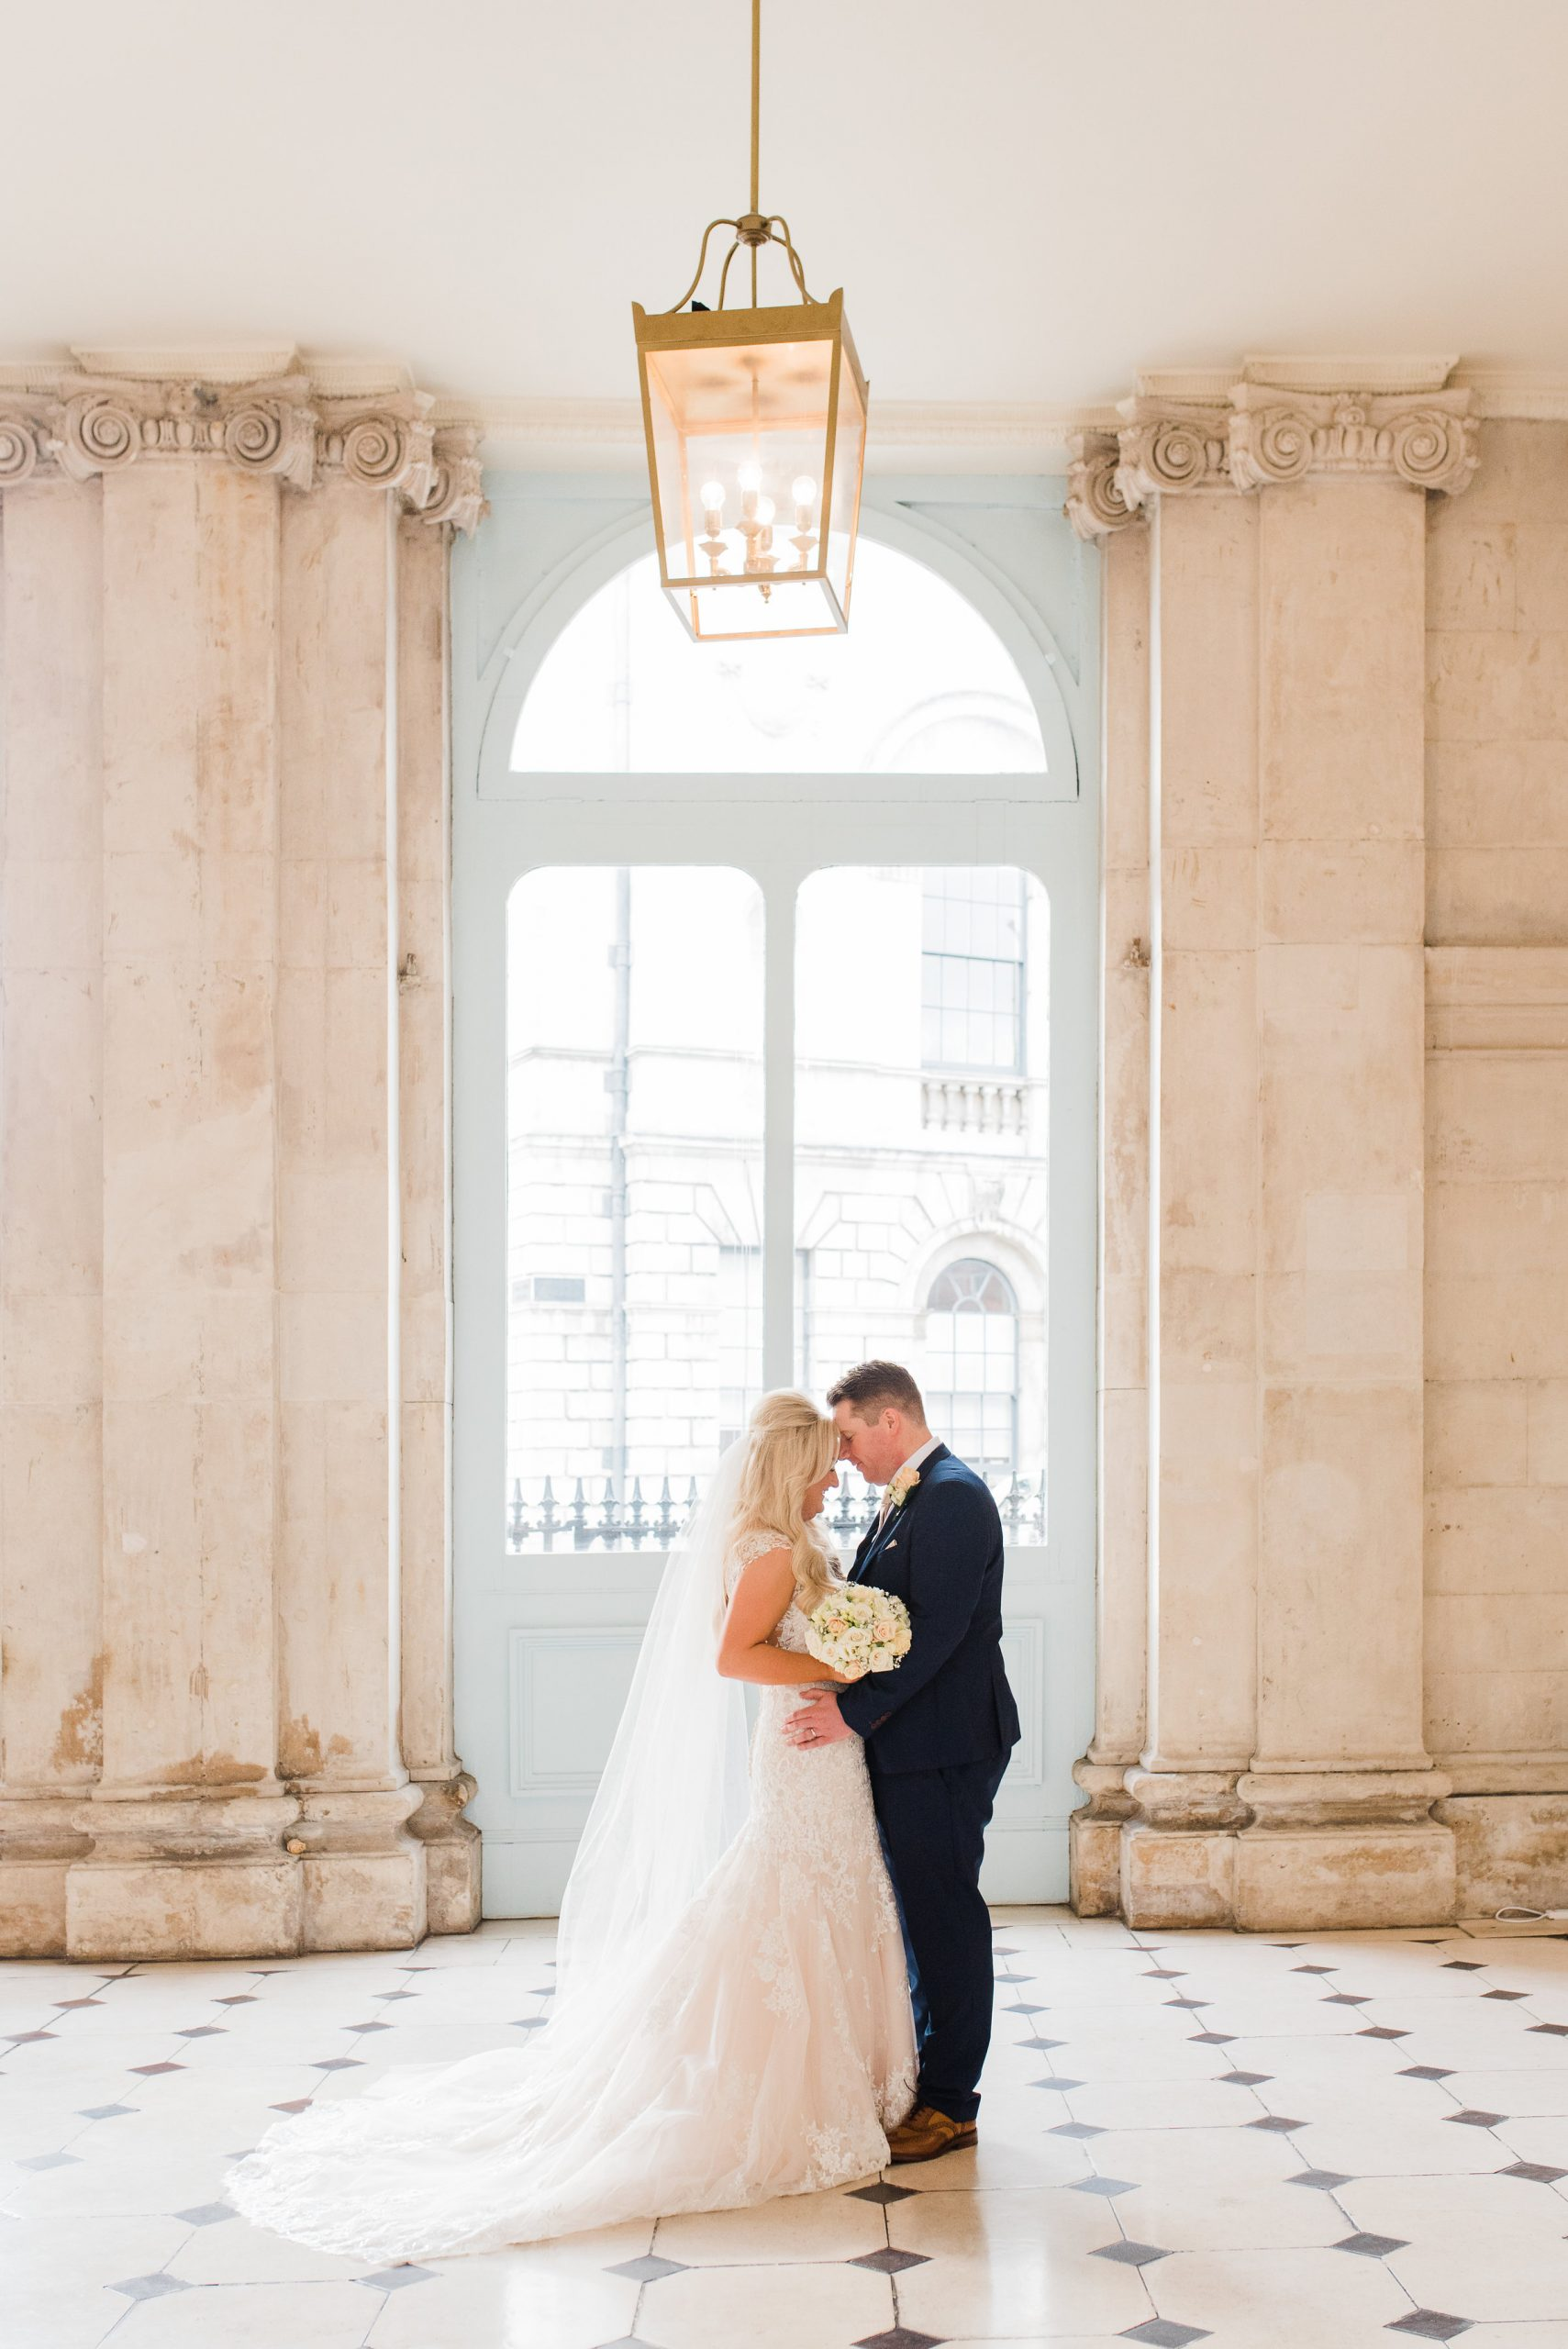 Bride and groom hugging each other in Dublin City hall